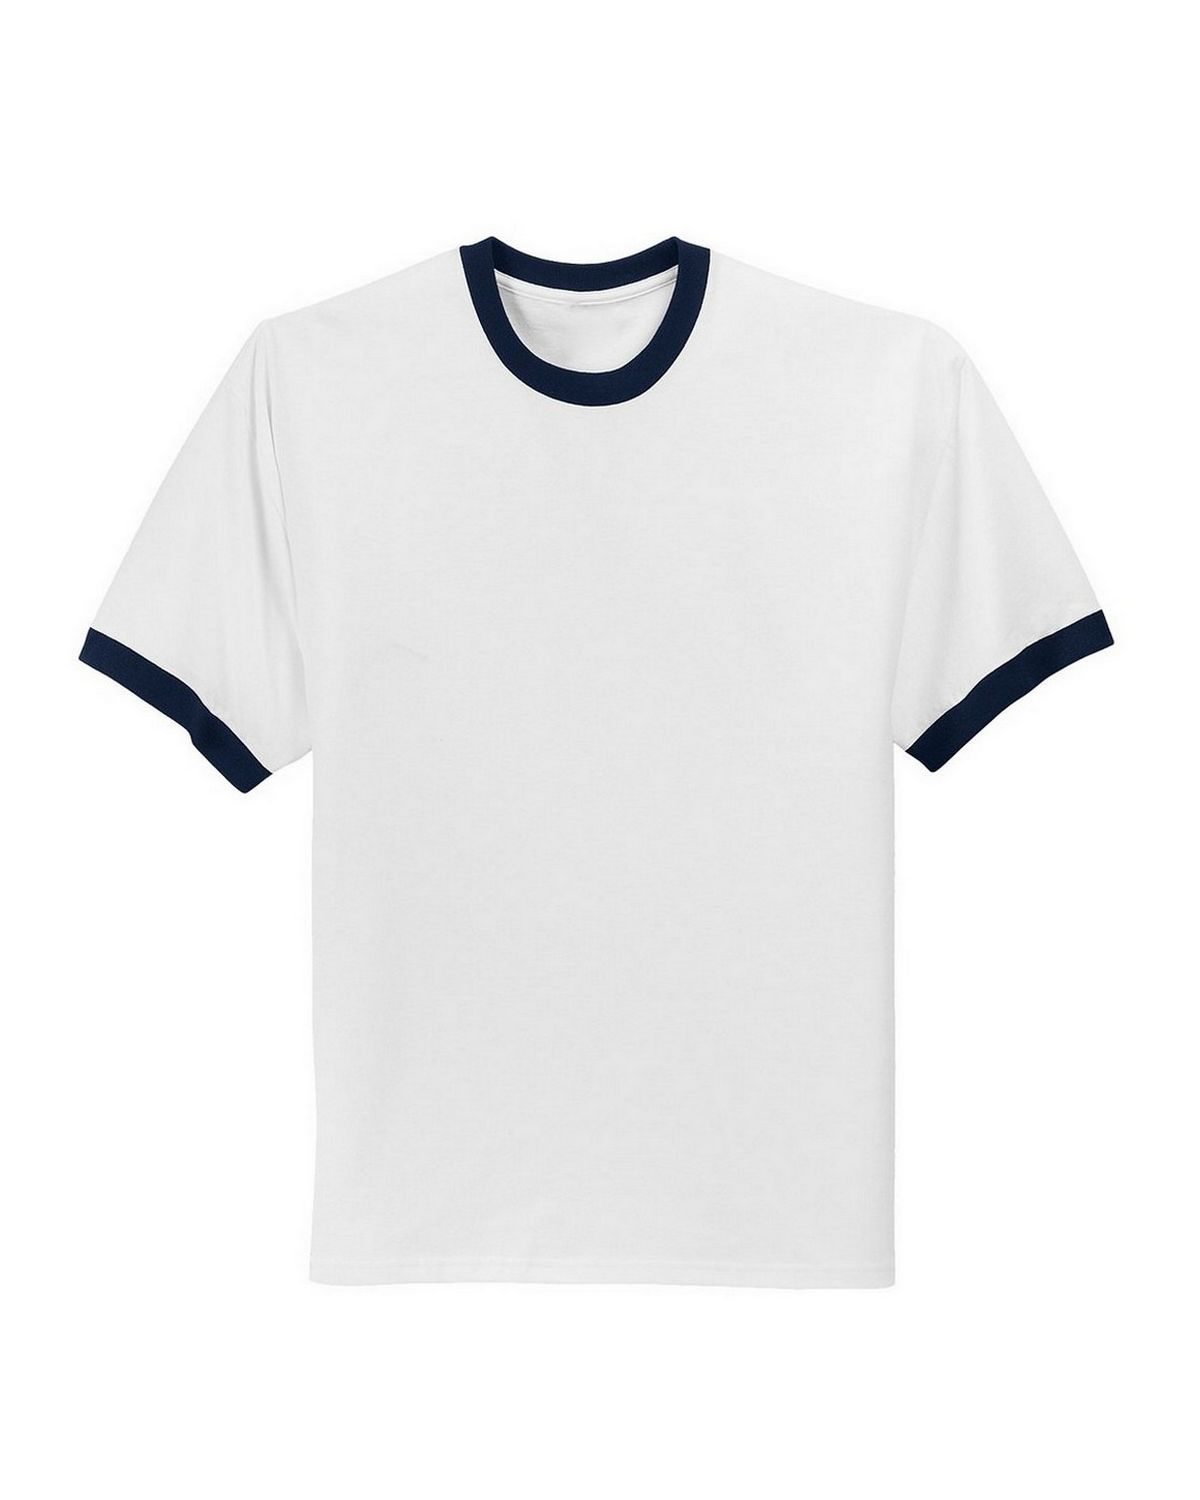 a060d18f Size Chart for Port & Company PC61R Ringer T-Shirt